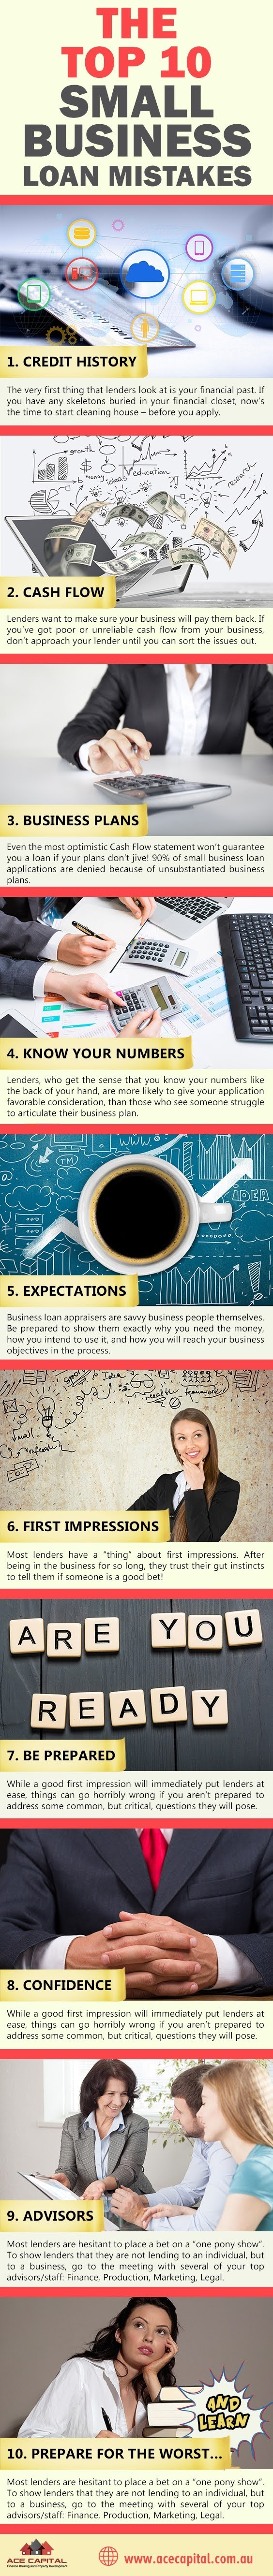 Top 10 Small Business Loan Mistakes #infographic